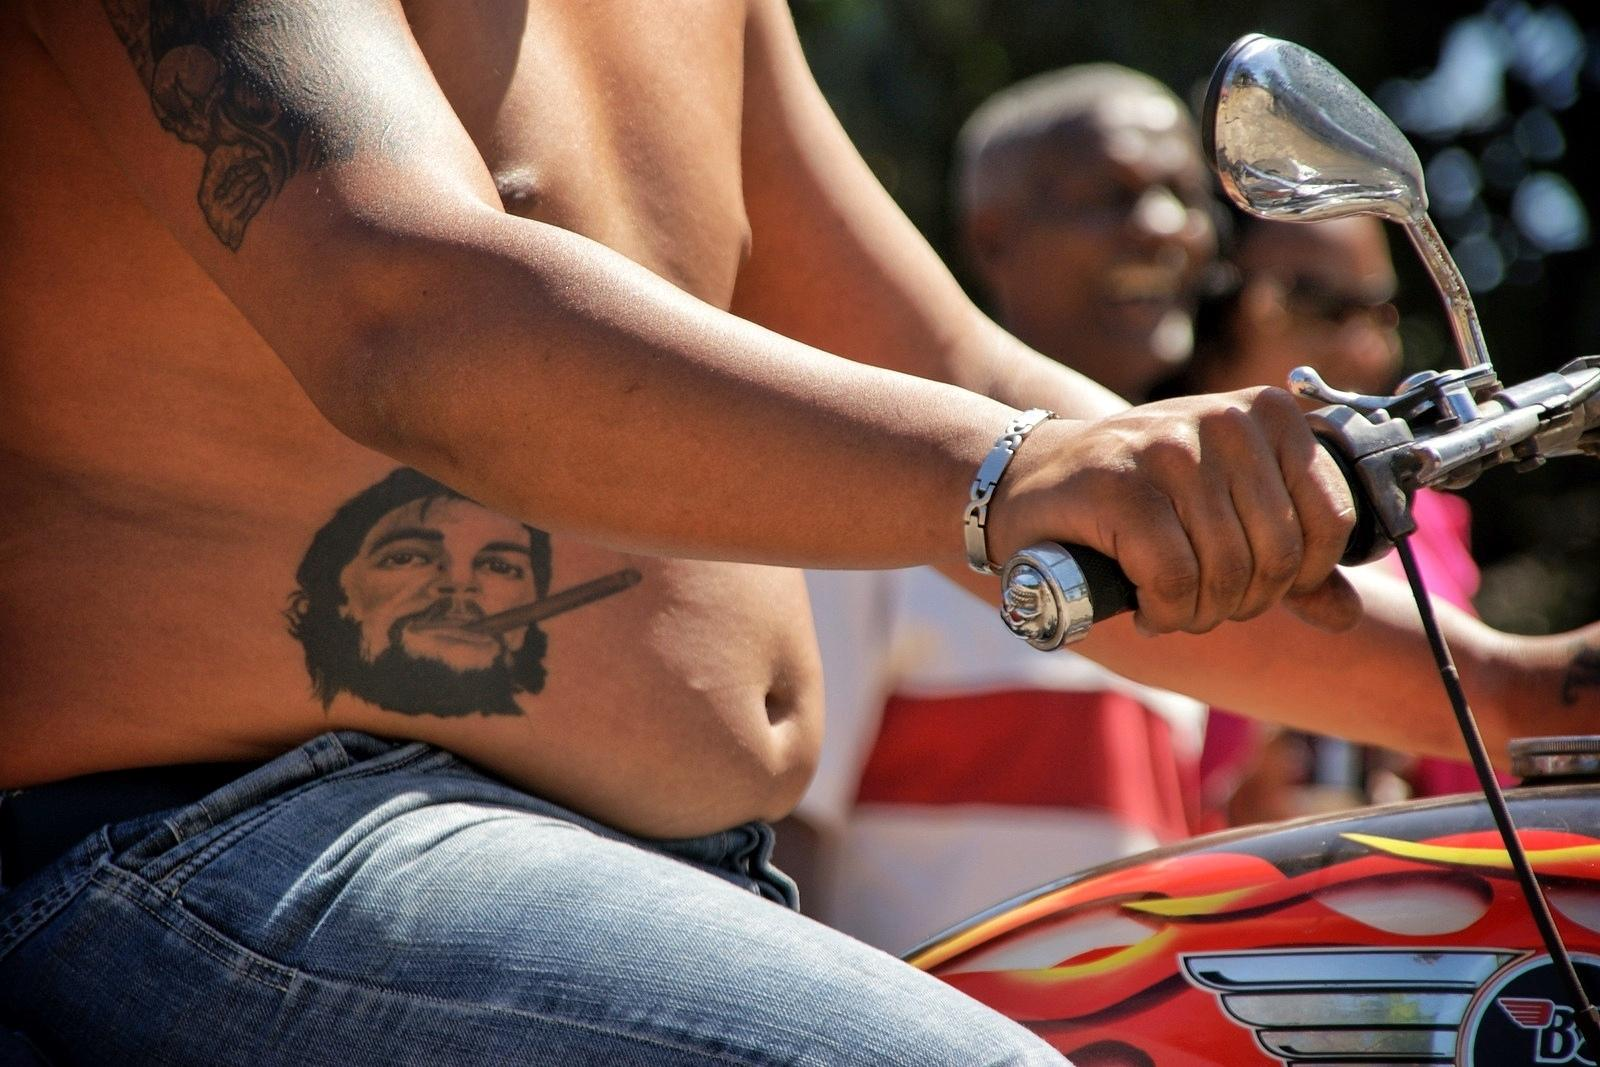 Che Tattoo and the motorcyclist